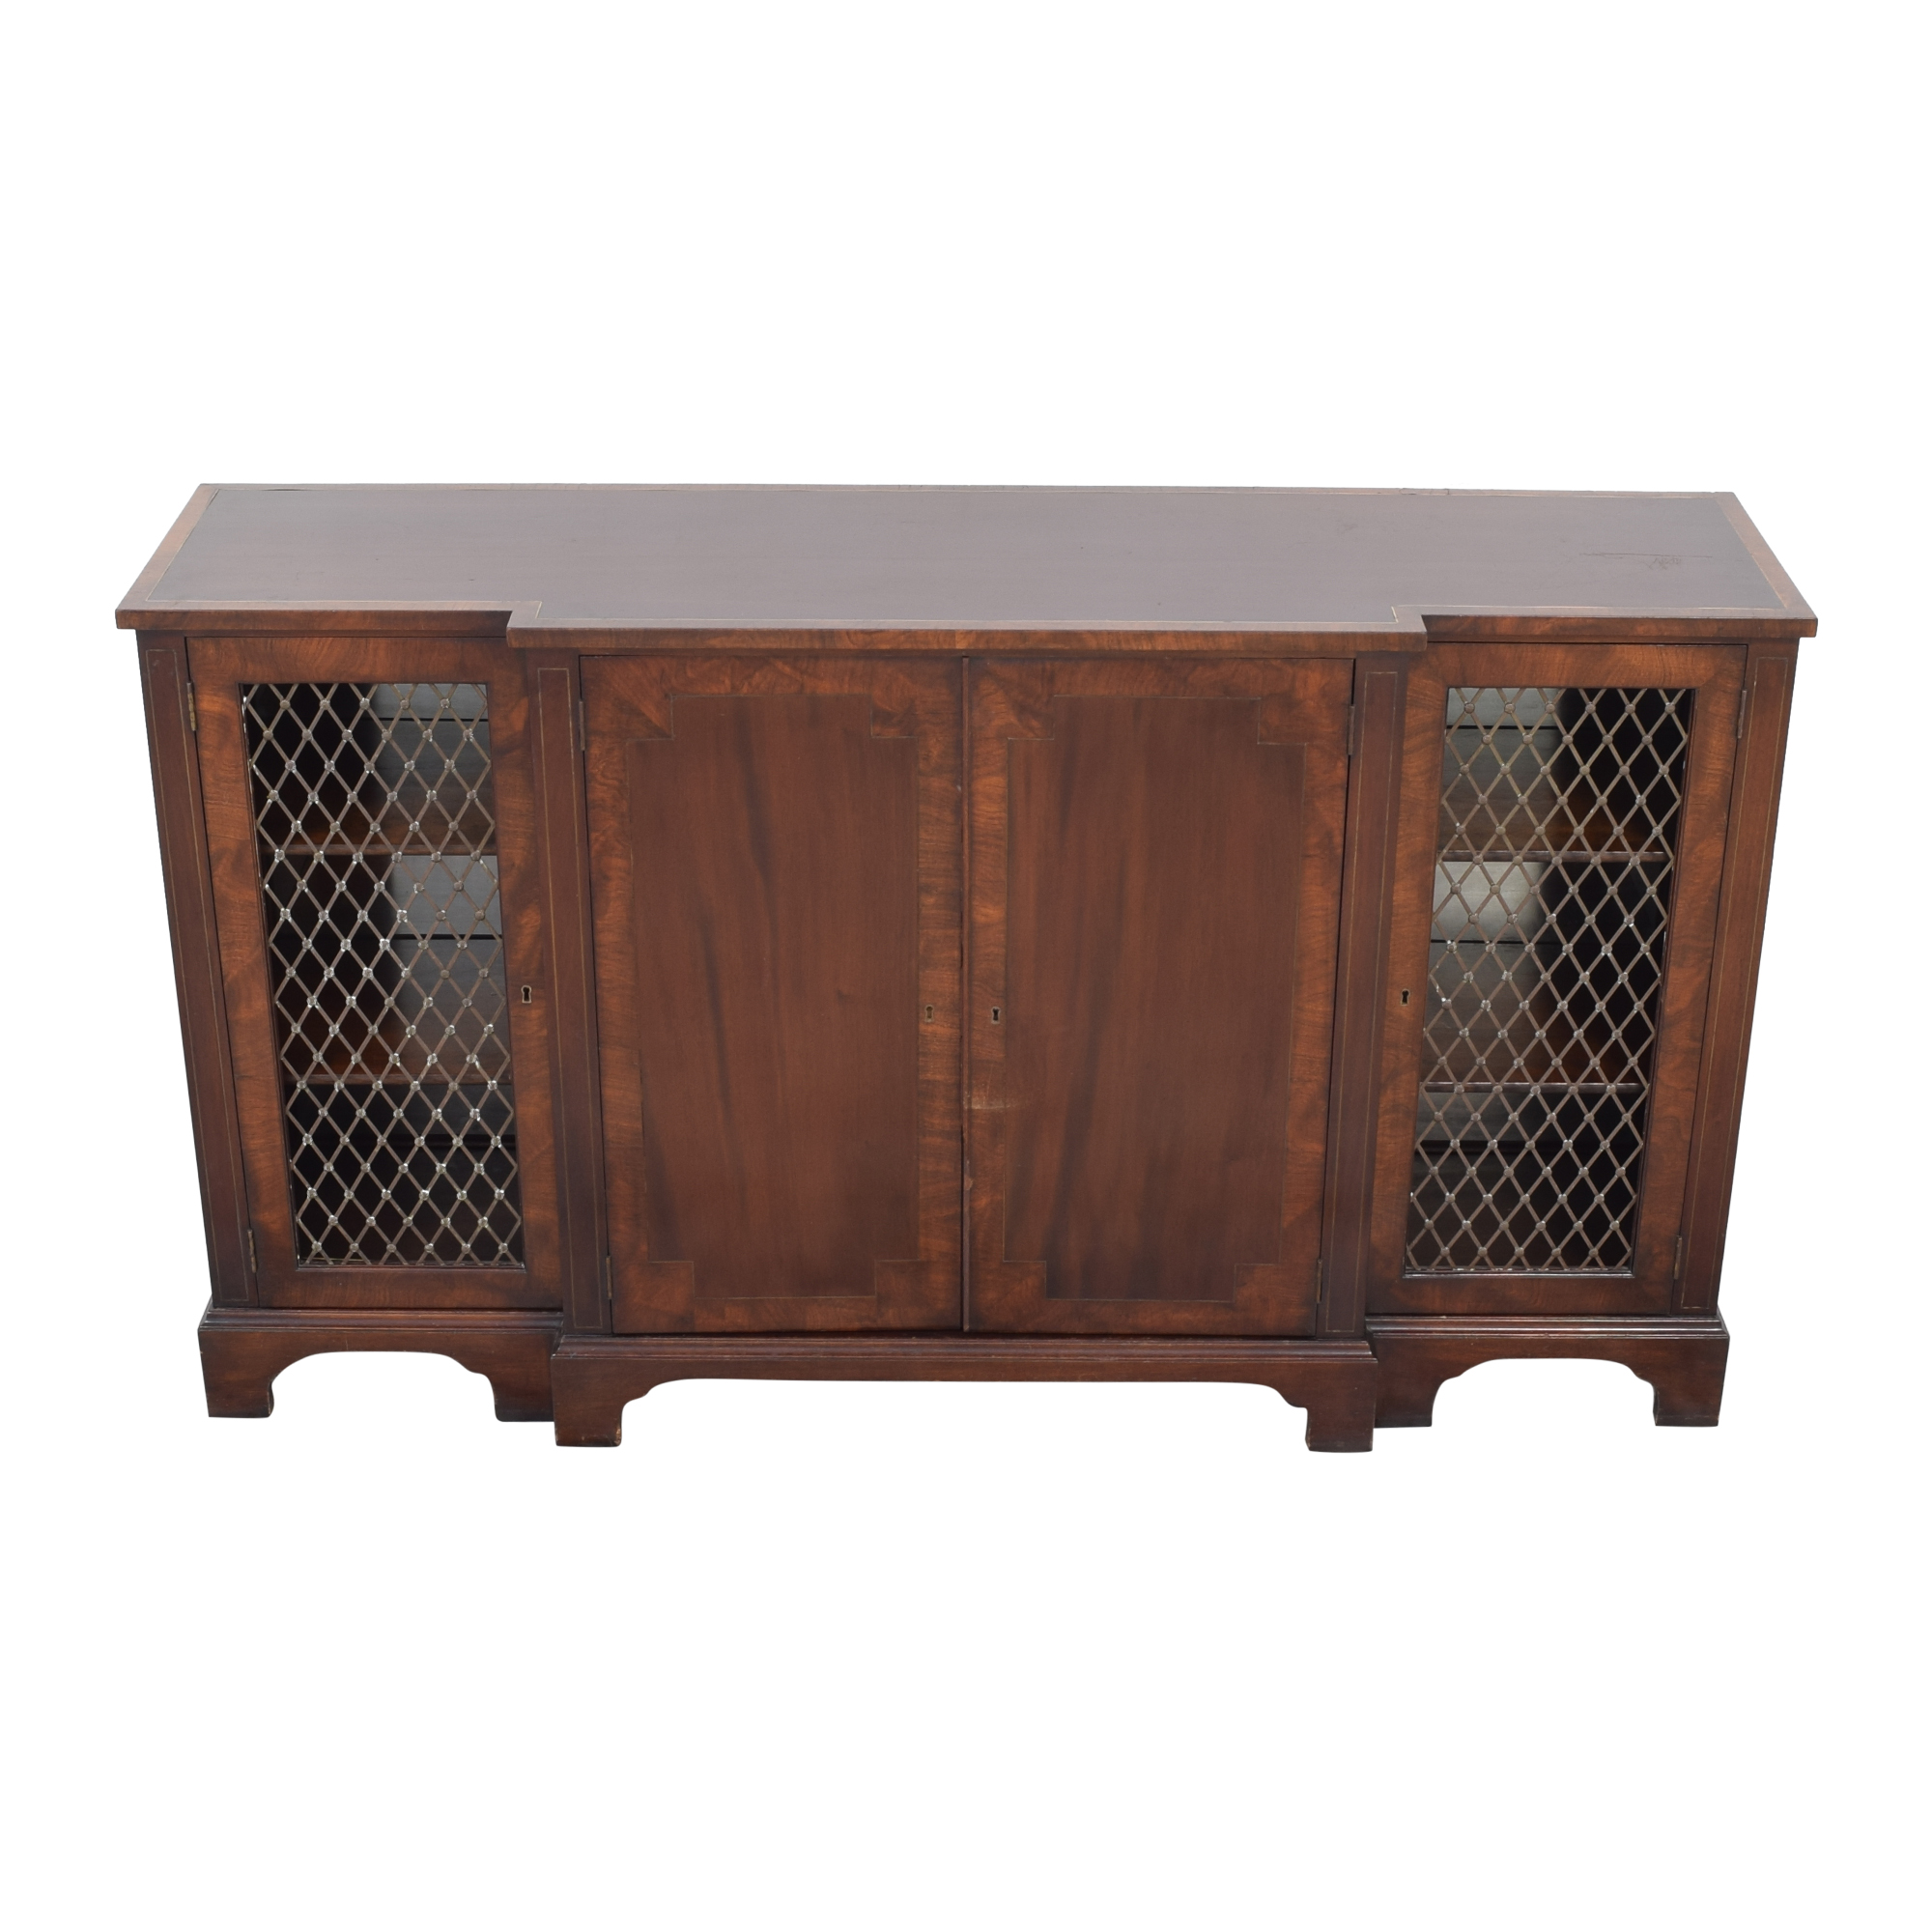 Vintage Sideboard with Lock and Key dimensions